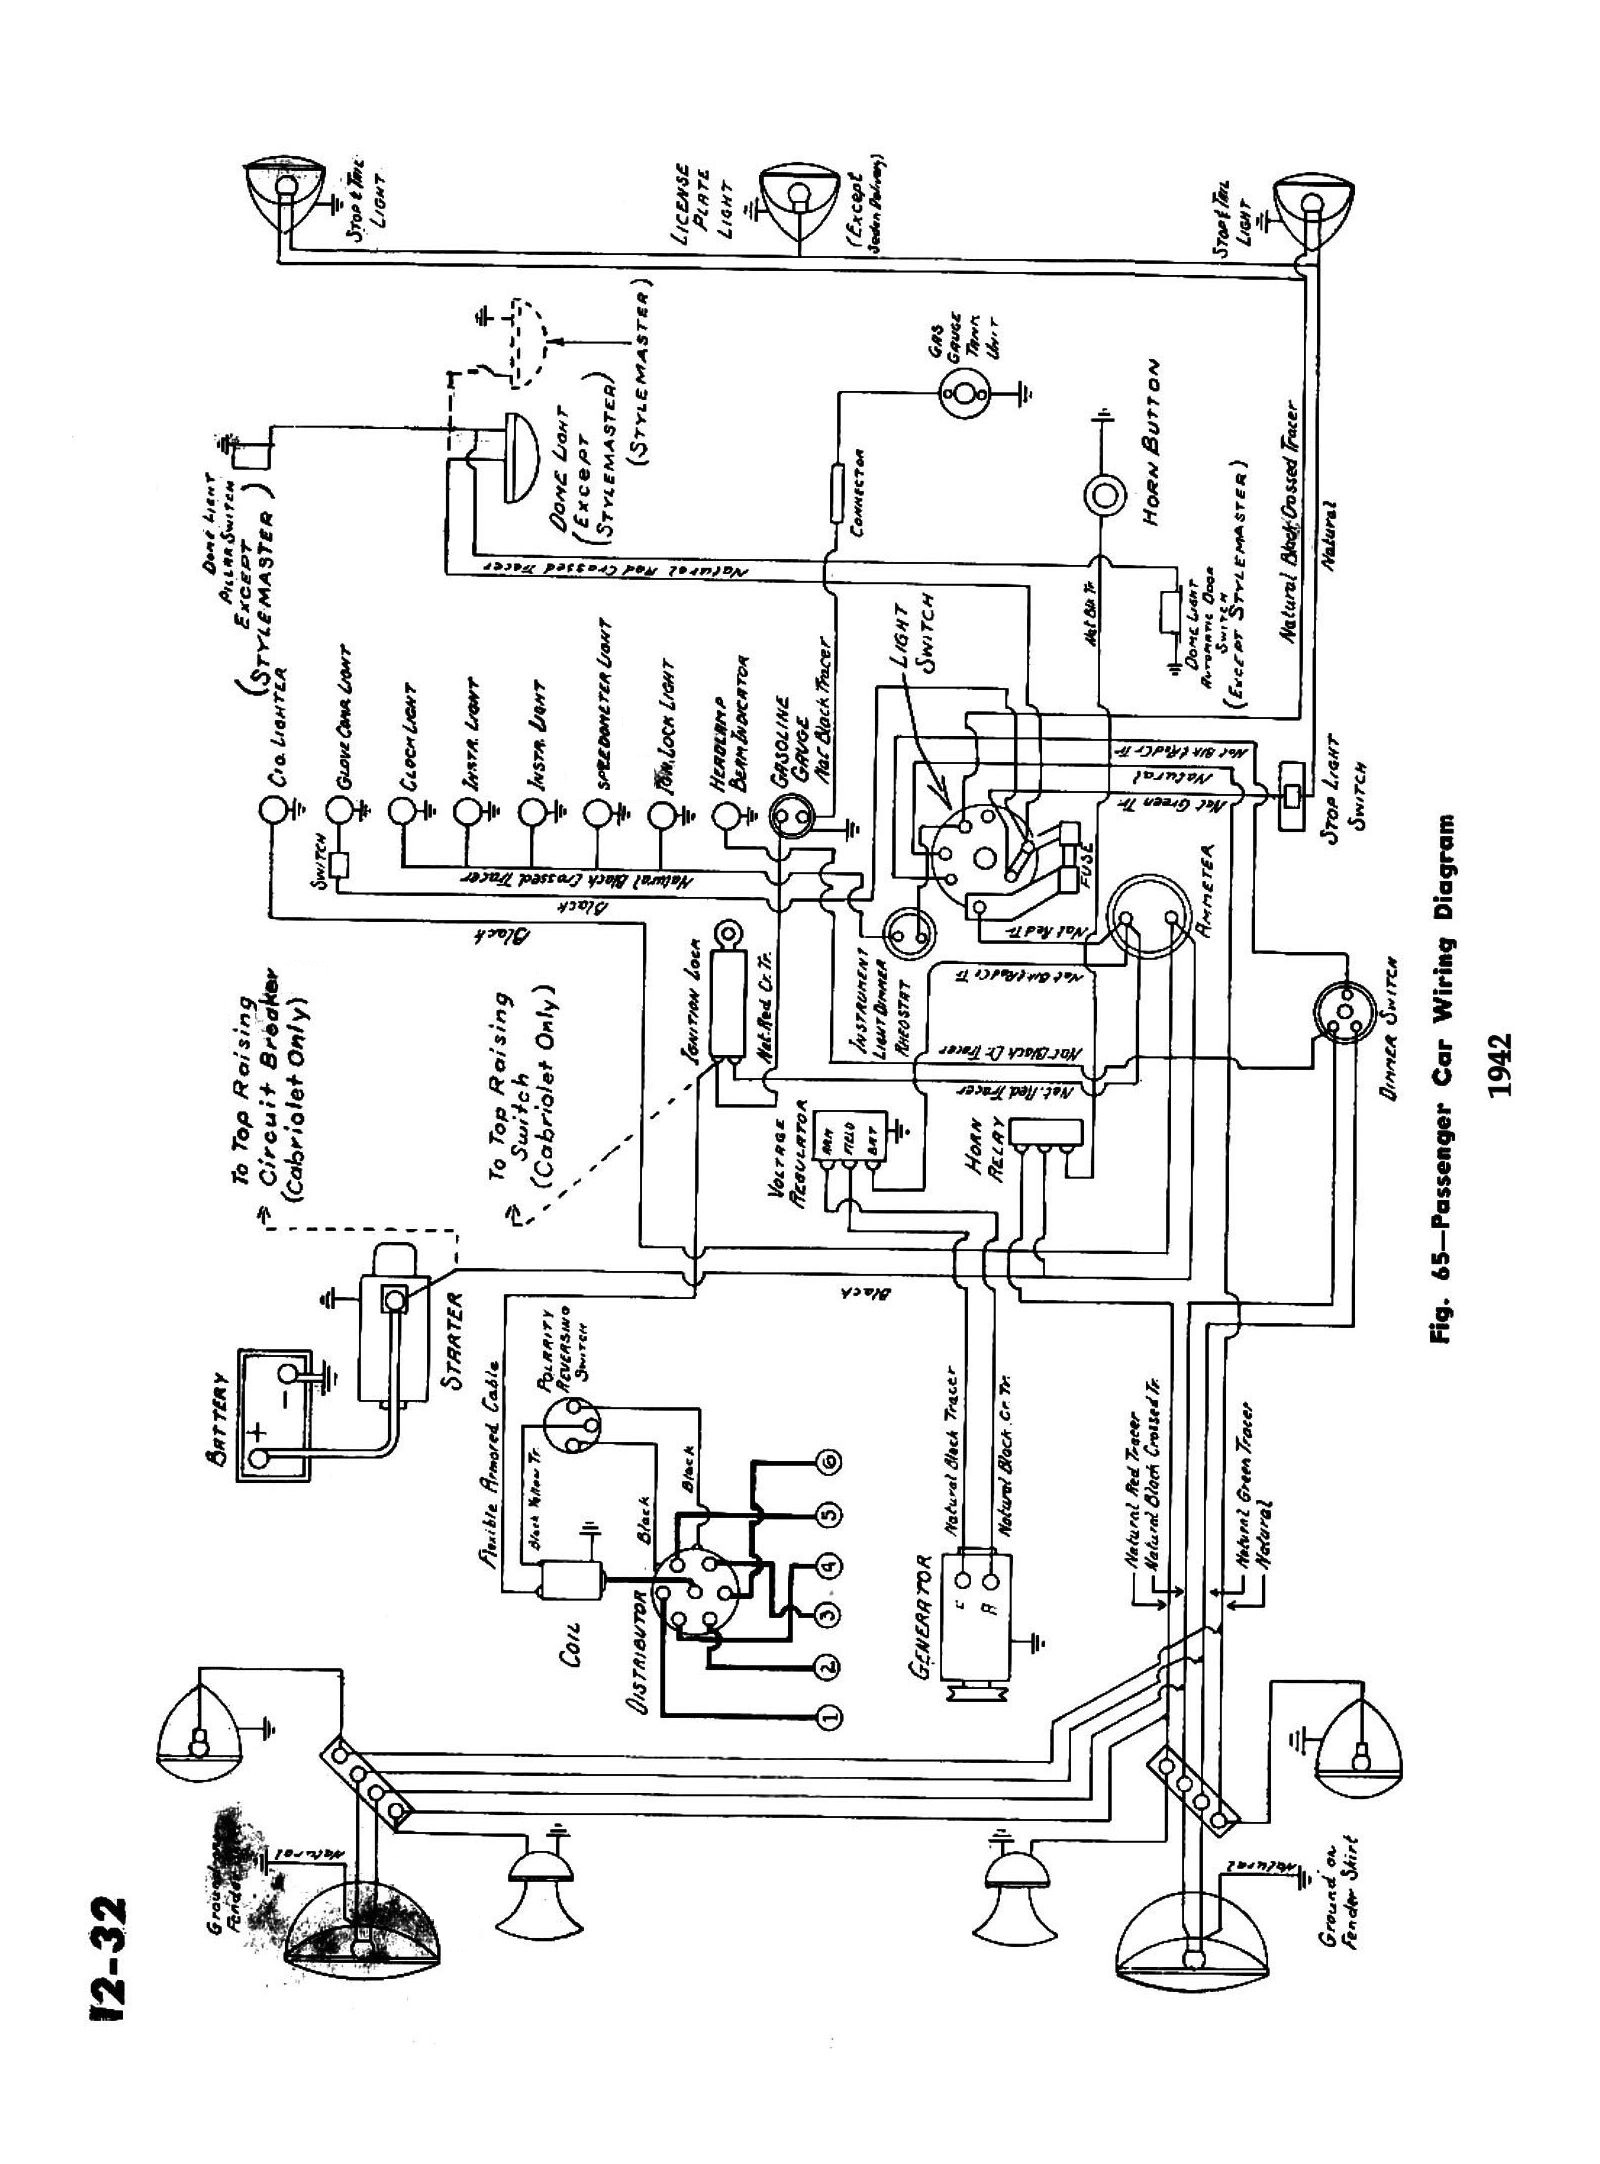 Mins Starter Wiring Diagram Detailed Schematics Peterbilt 379 36 Images Parts 42csm1232aresize